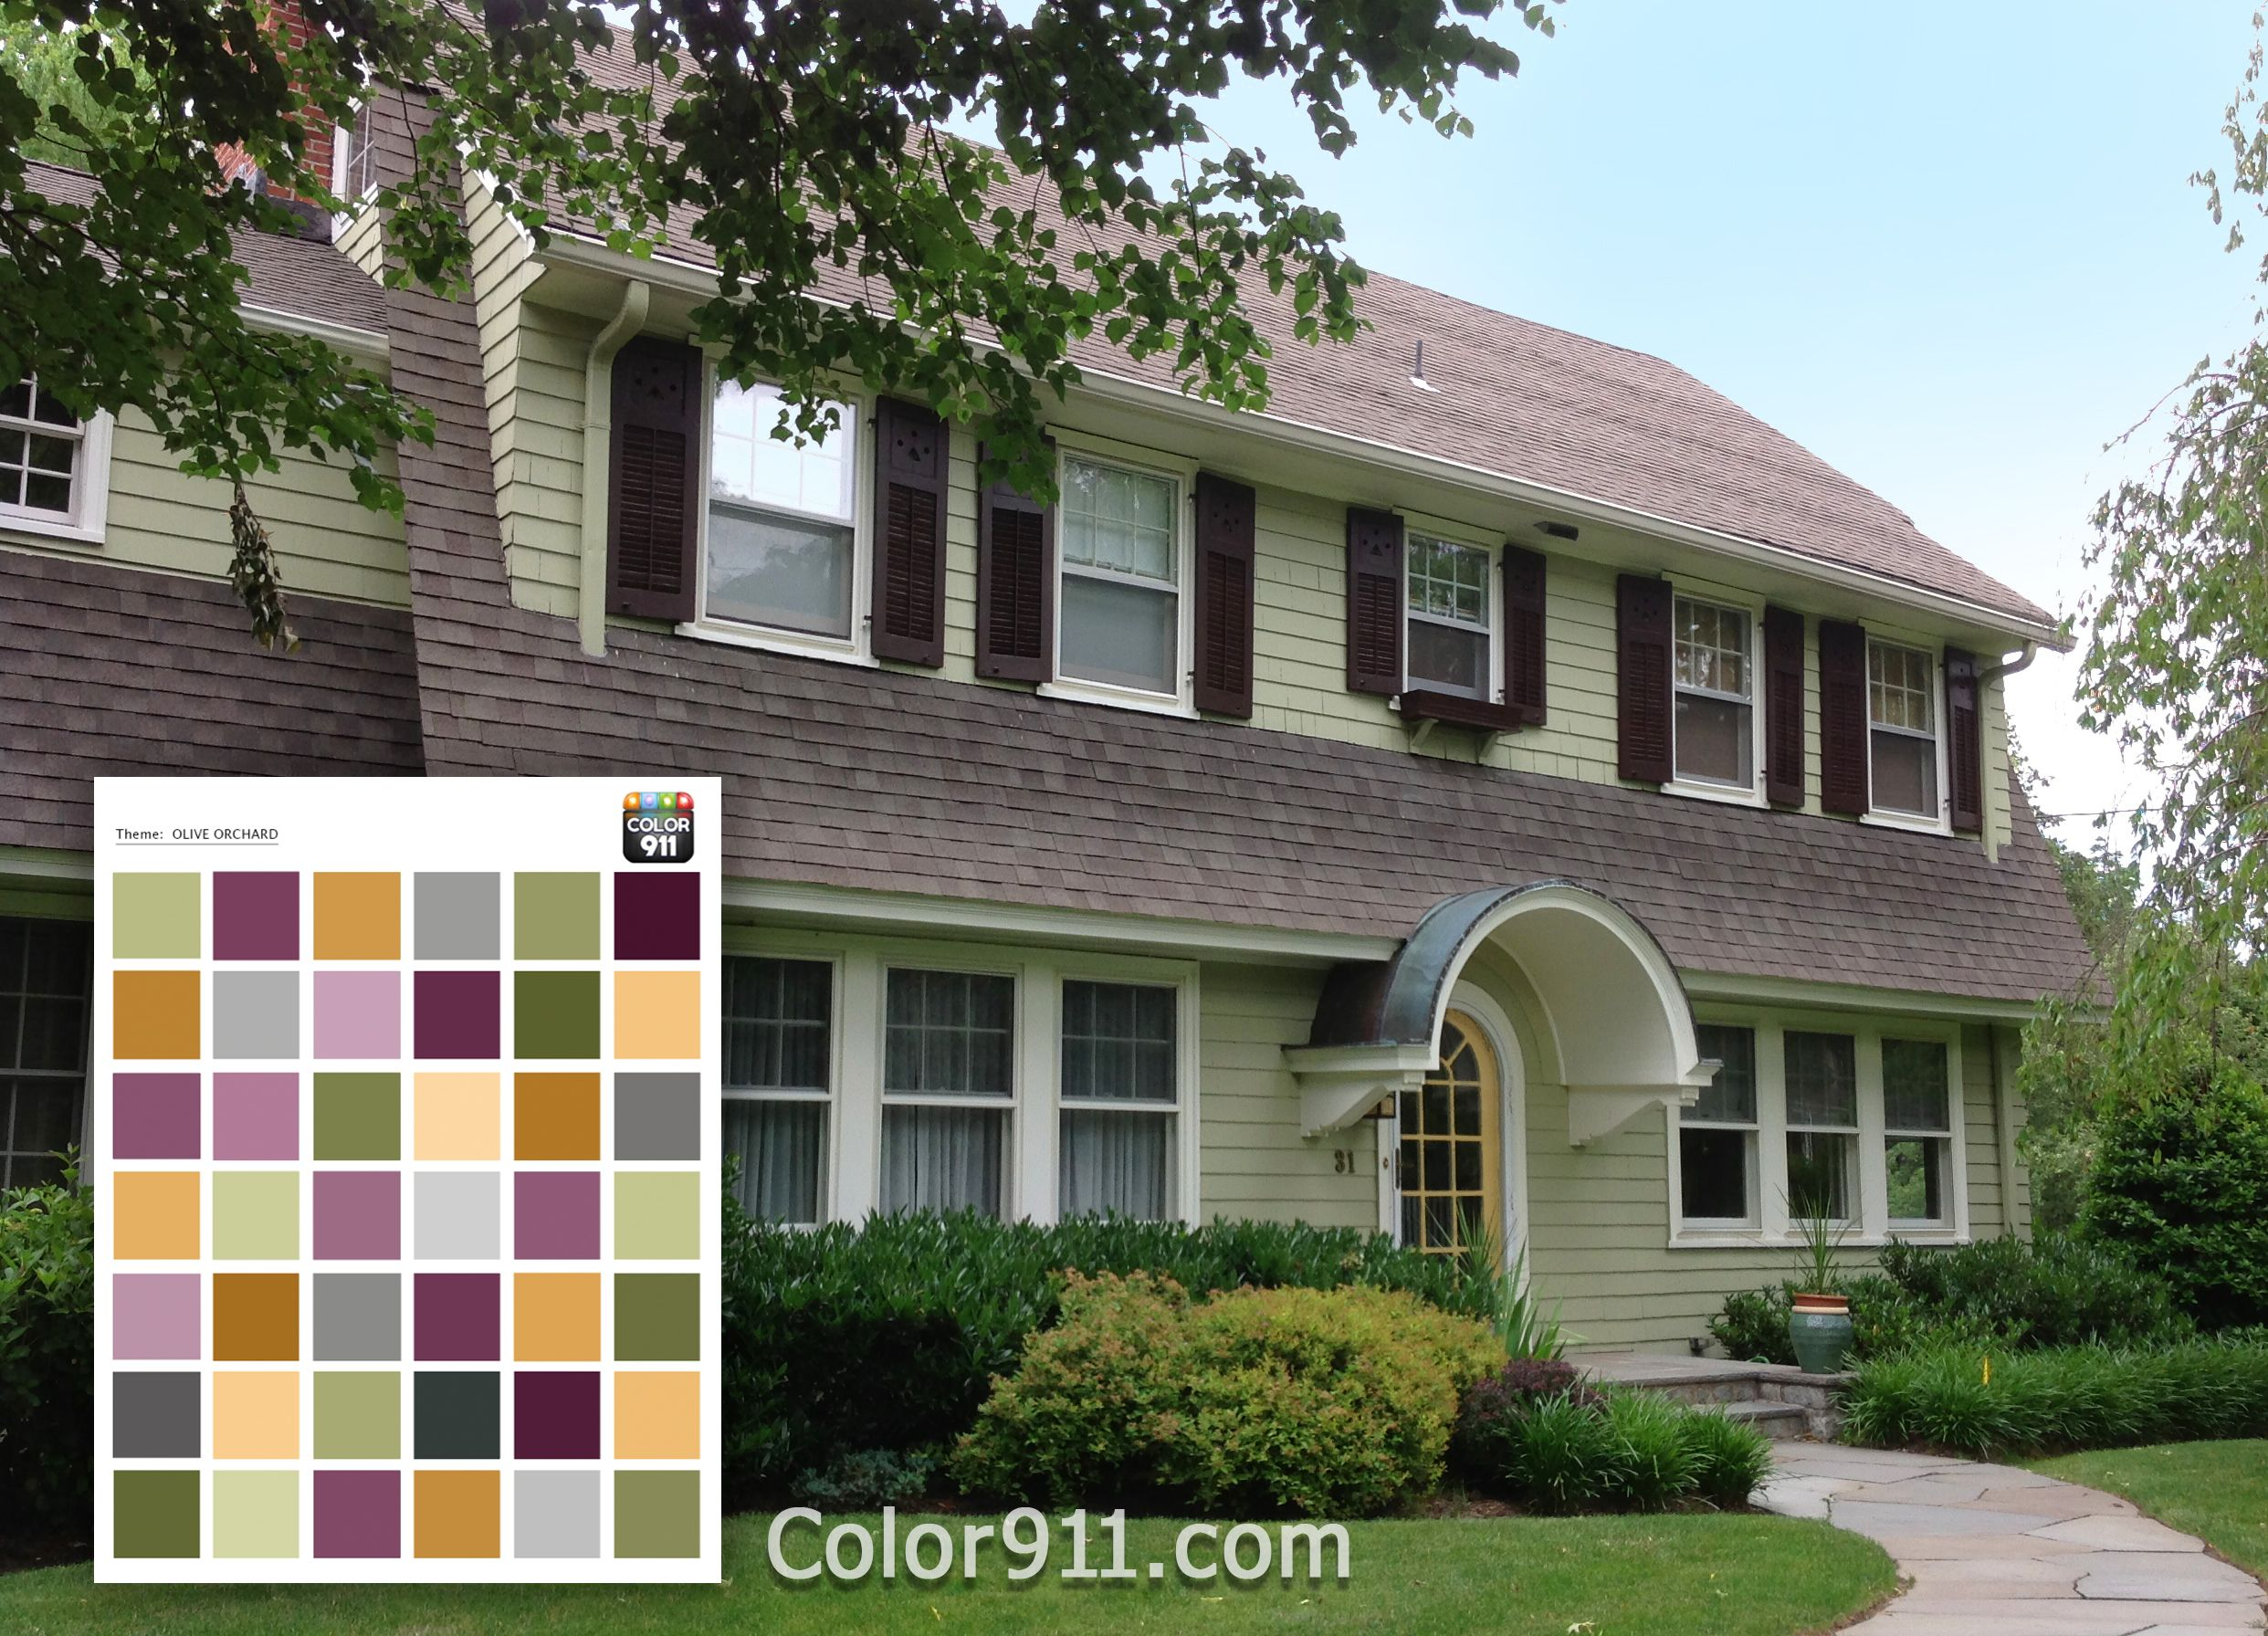 Paint Your House App looking for colors to paint your home? check out the color911 app